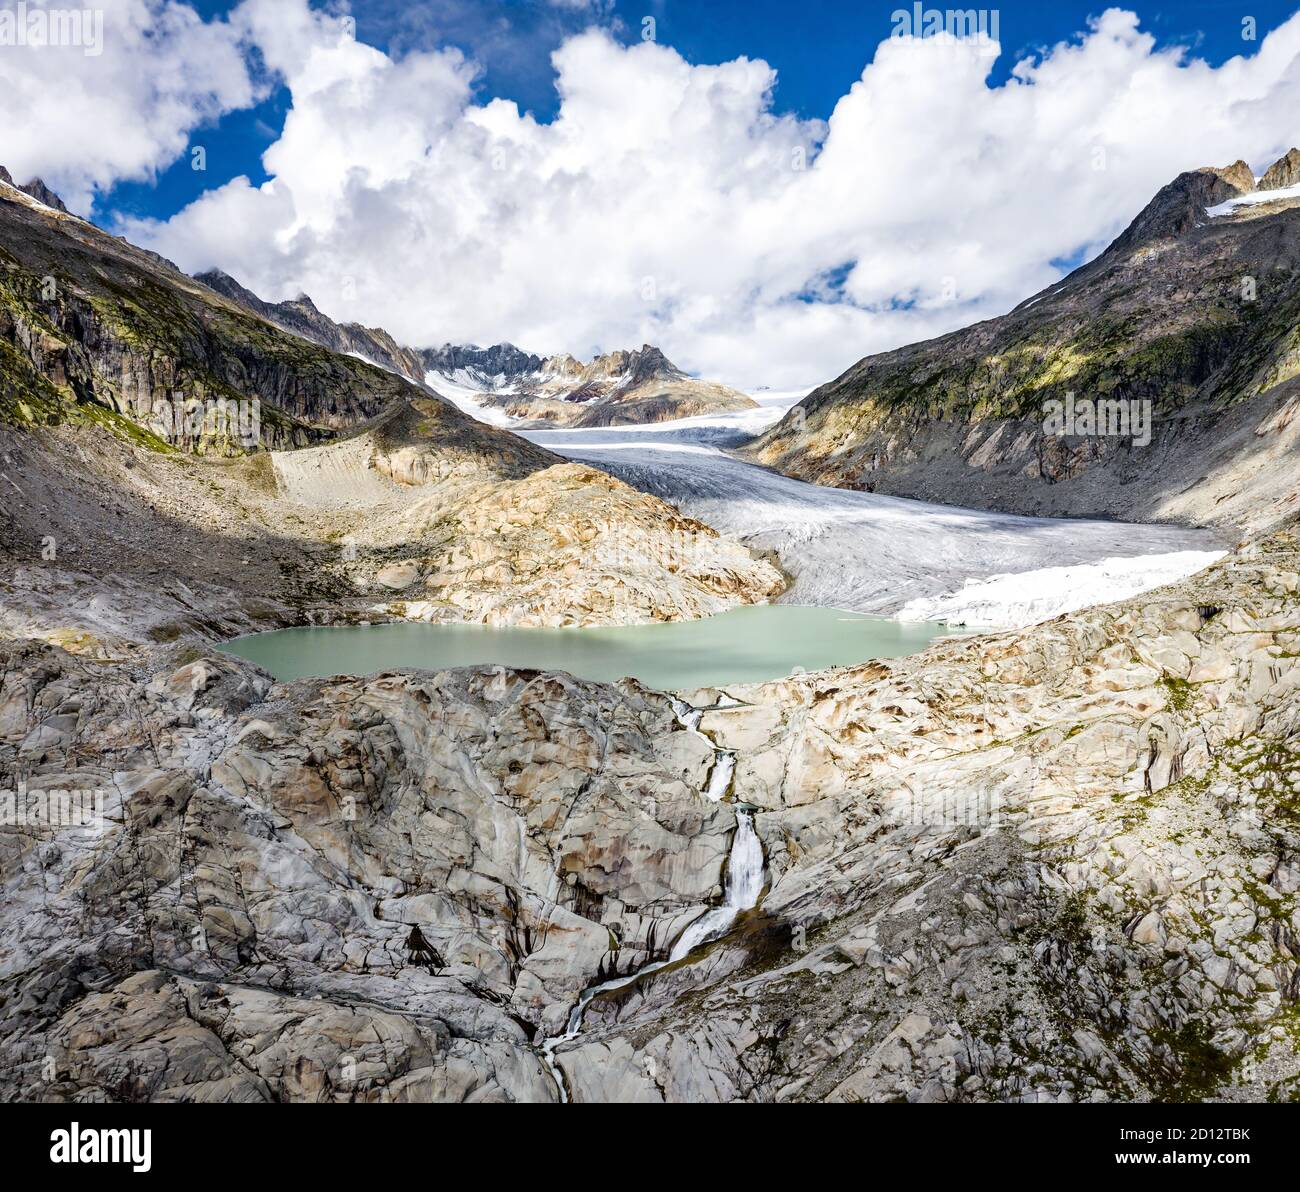 The Rhone Glacier, the source of the Rhone at Furka Pass in Switzerland Stock Photo